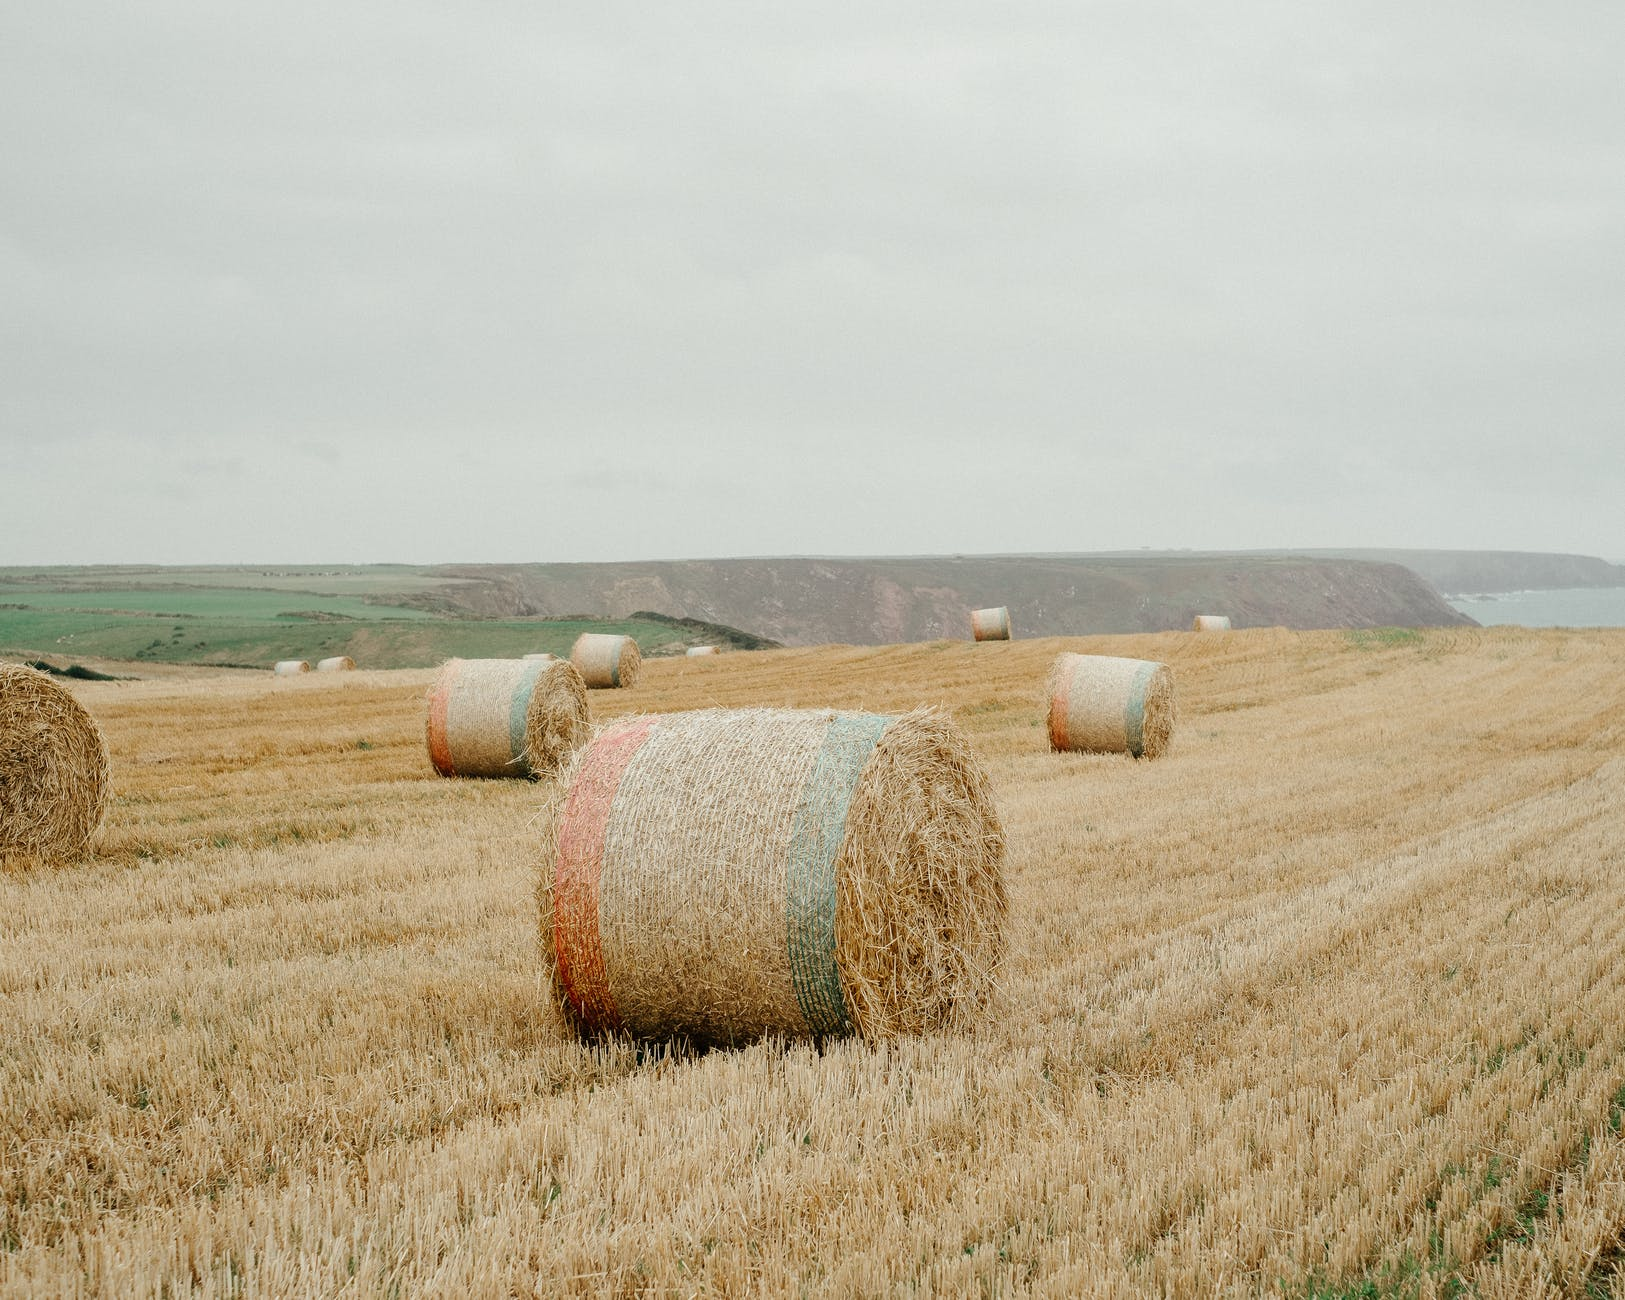 hay bales on dry grassy field in countryside